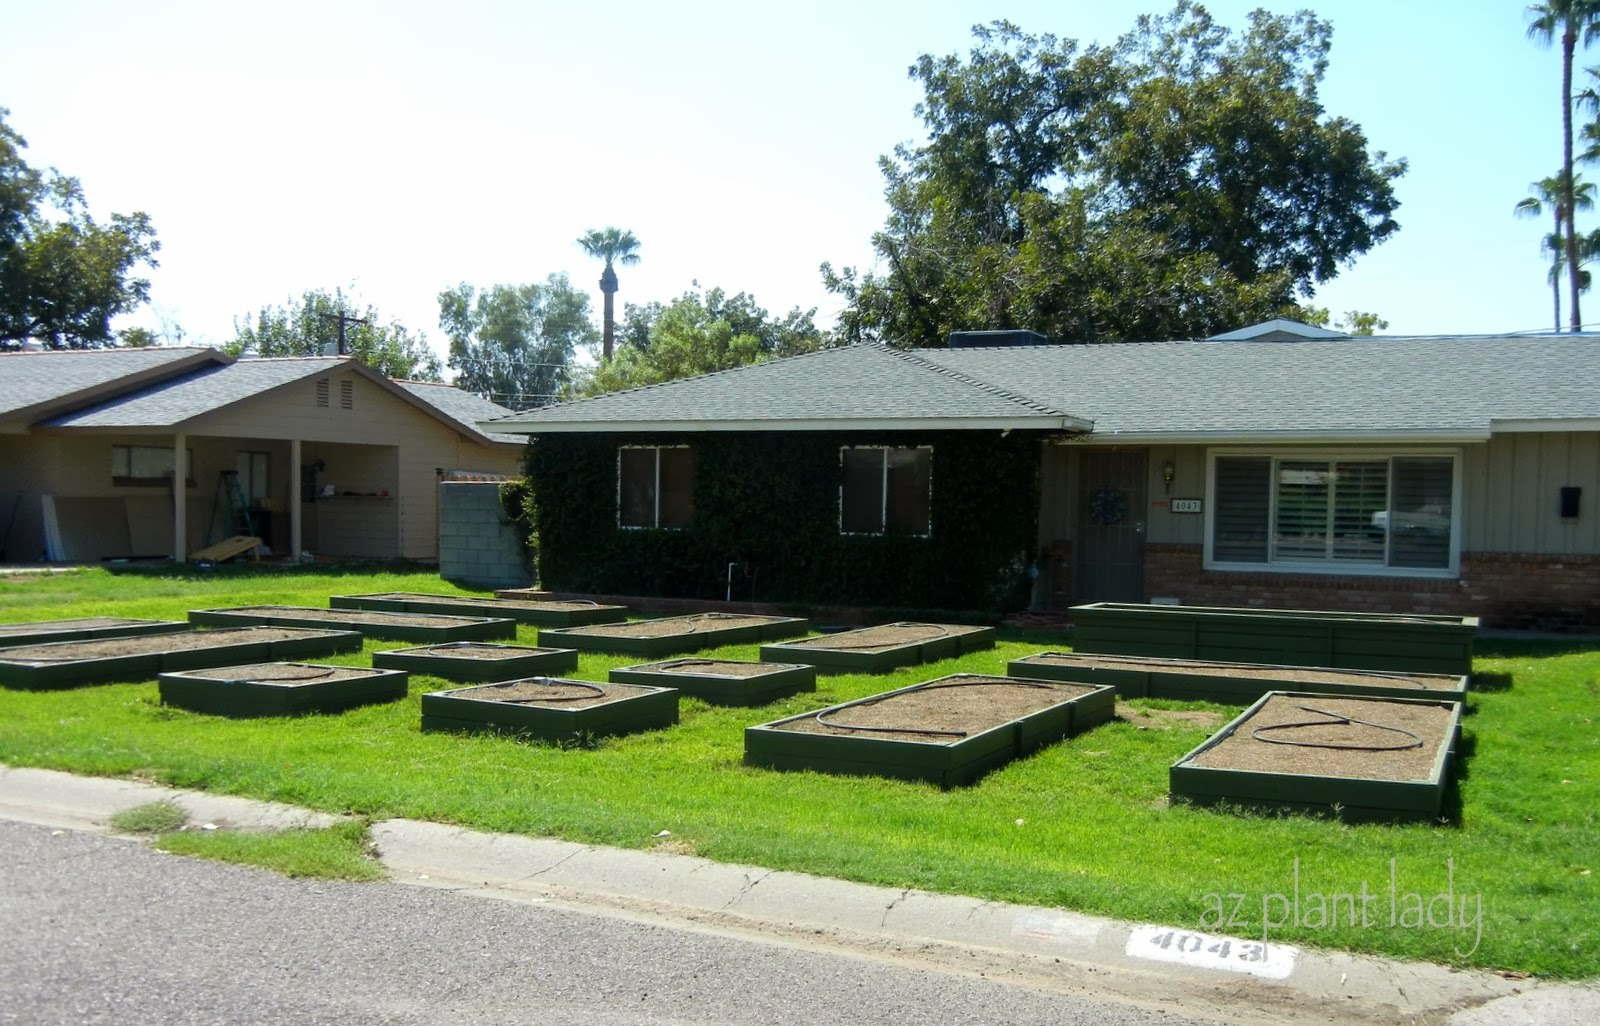 A Couple Of Years Ago, I Was Driving Home From A Landscape Consult And Saw  This Homeu0027s Front Yard Filled With Raised Beds.